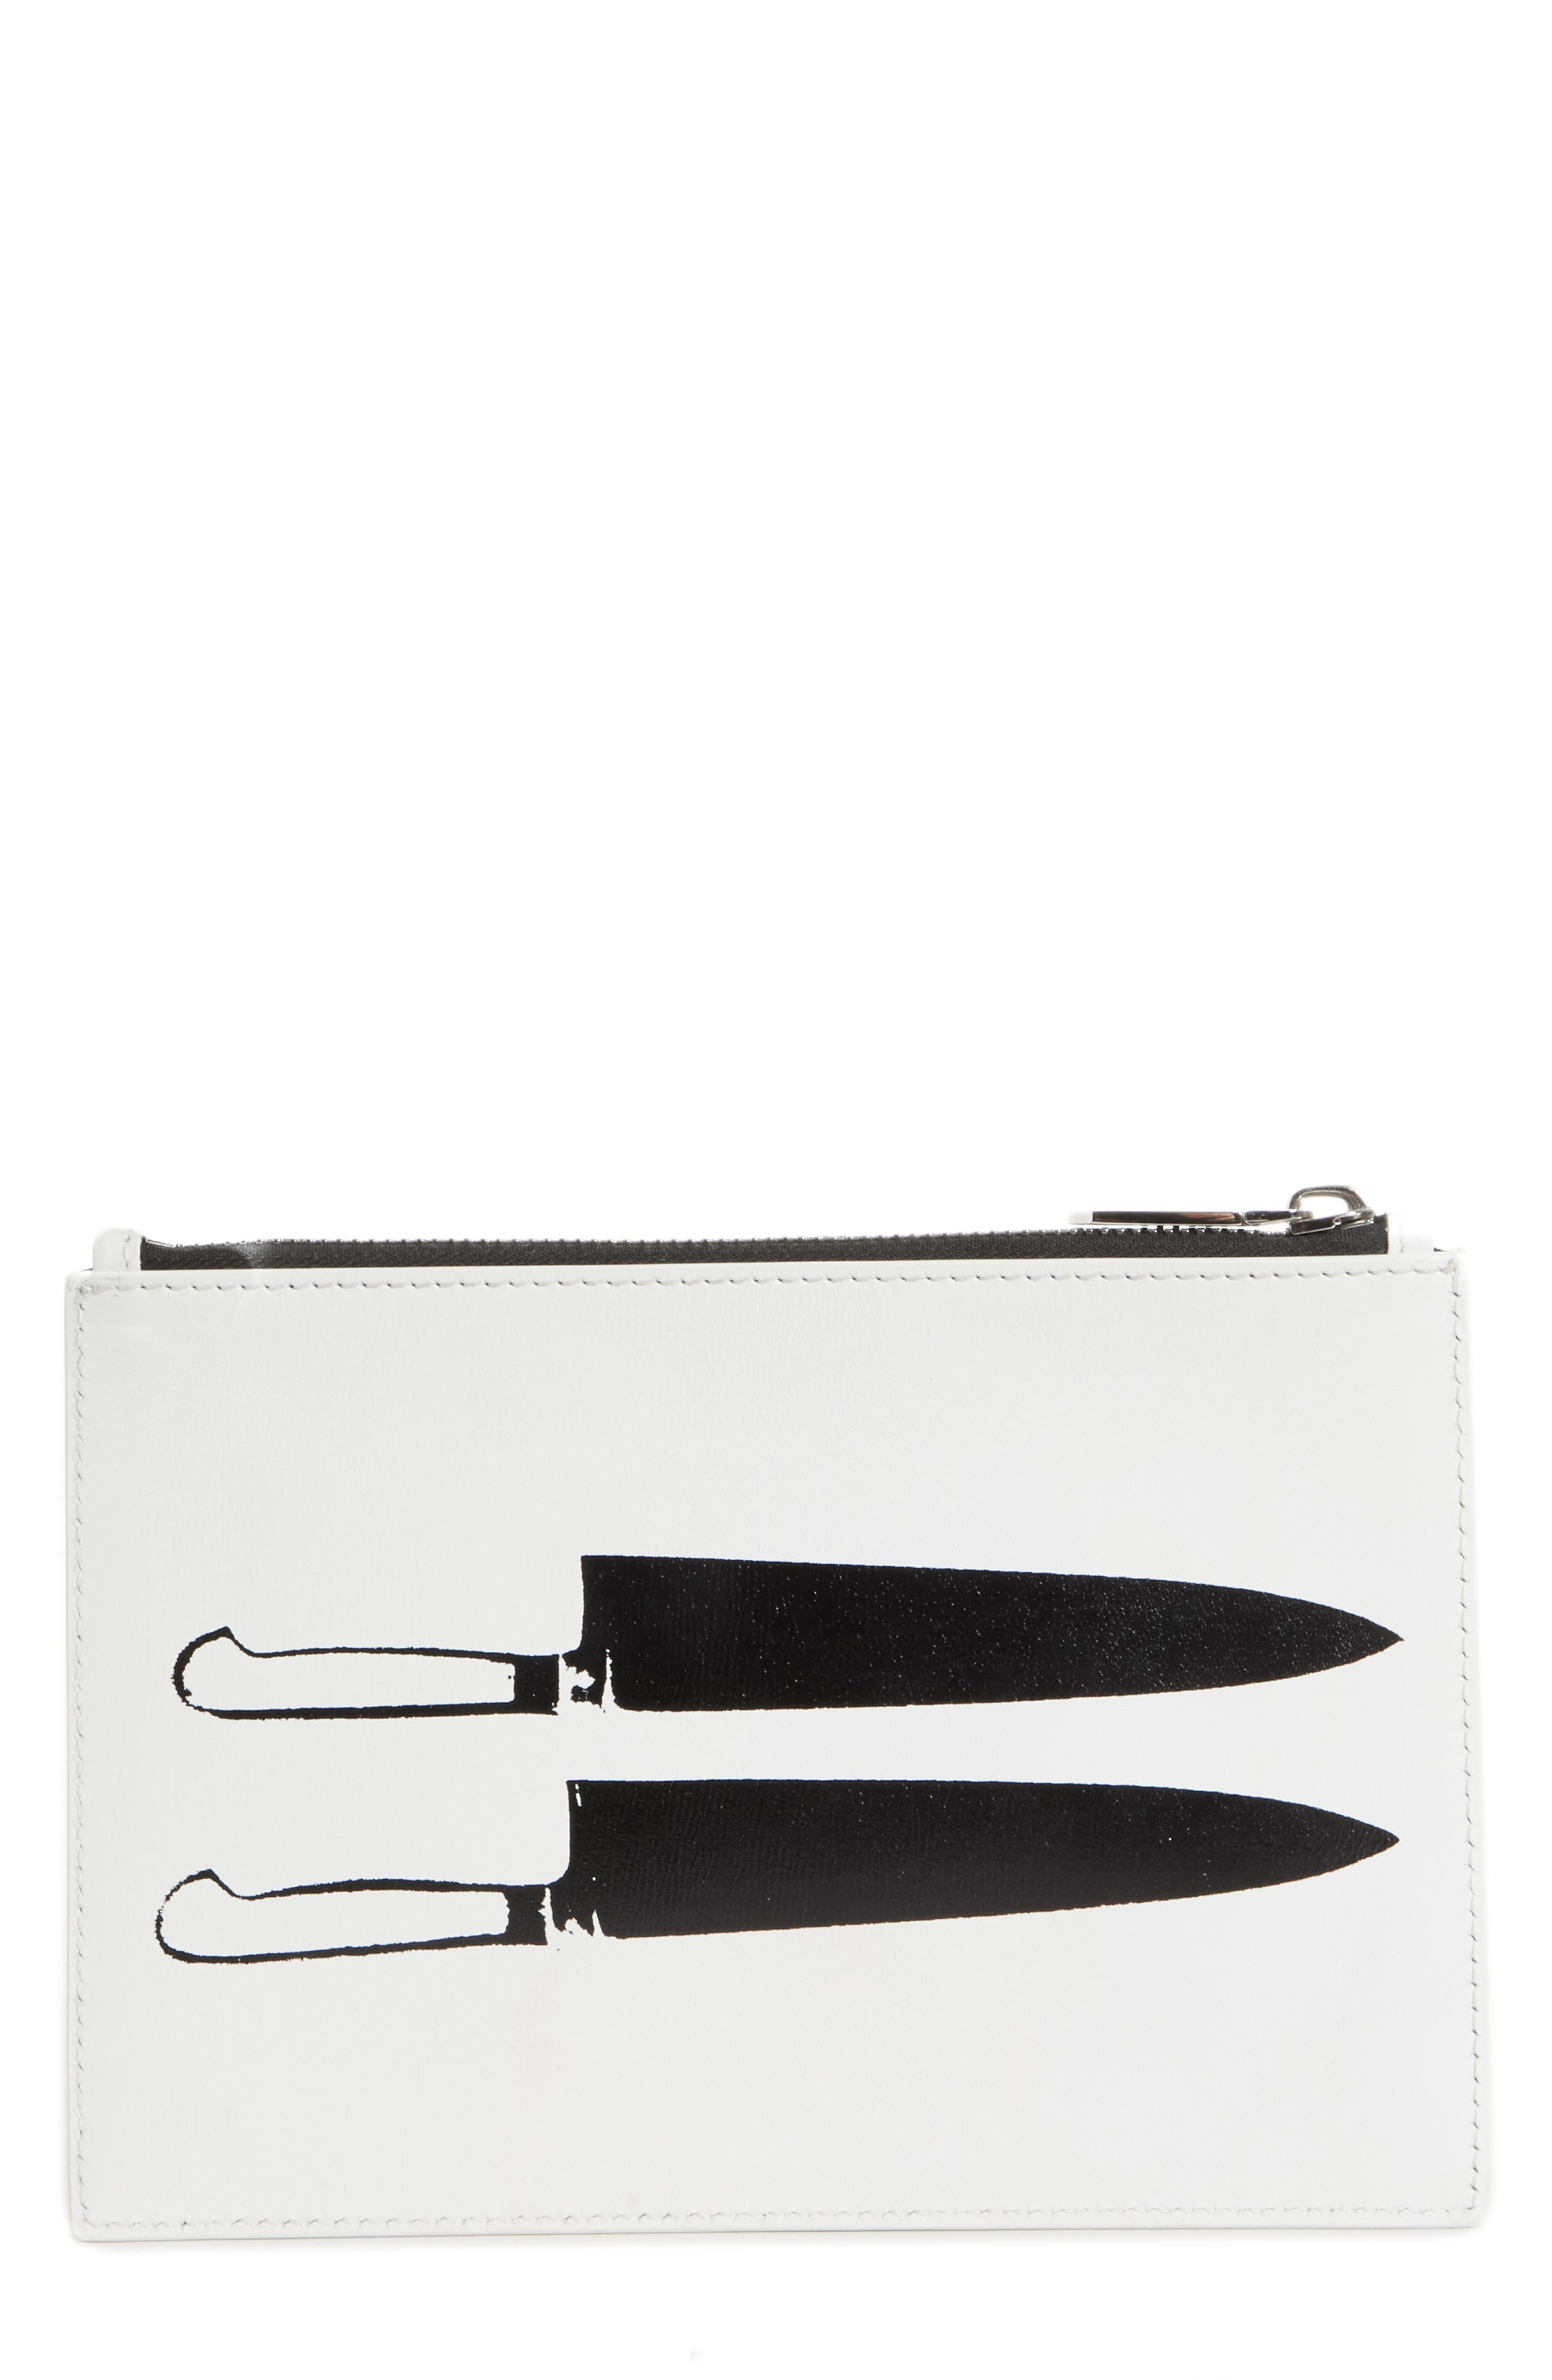 x Andy Warhol Foundation Knives Leather Pouch,                         Main,                         color, White/ Black